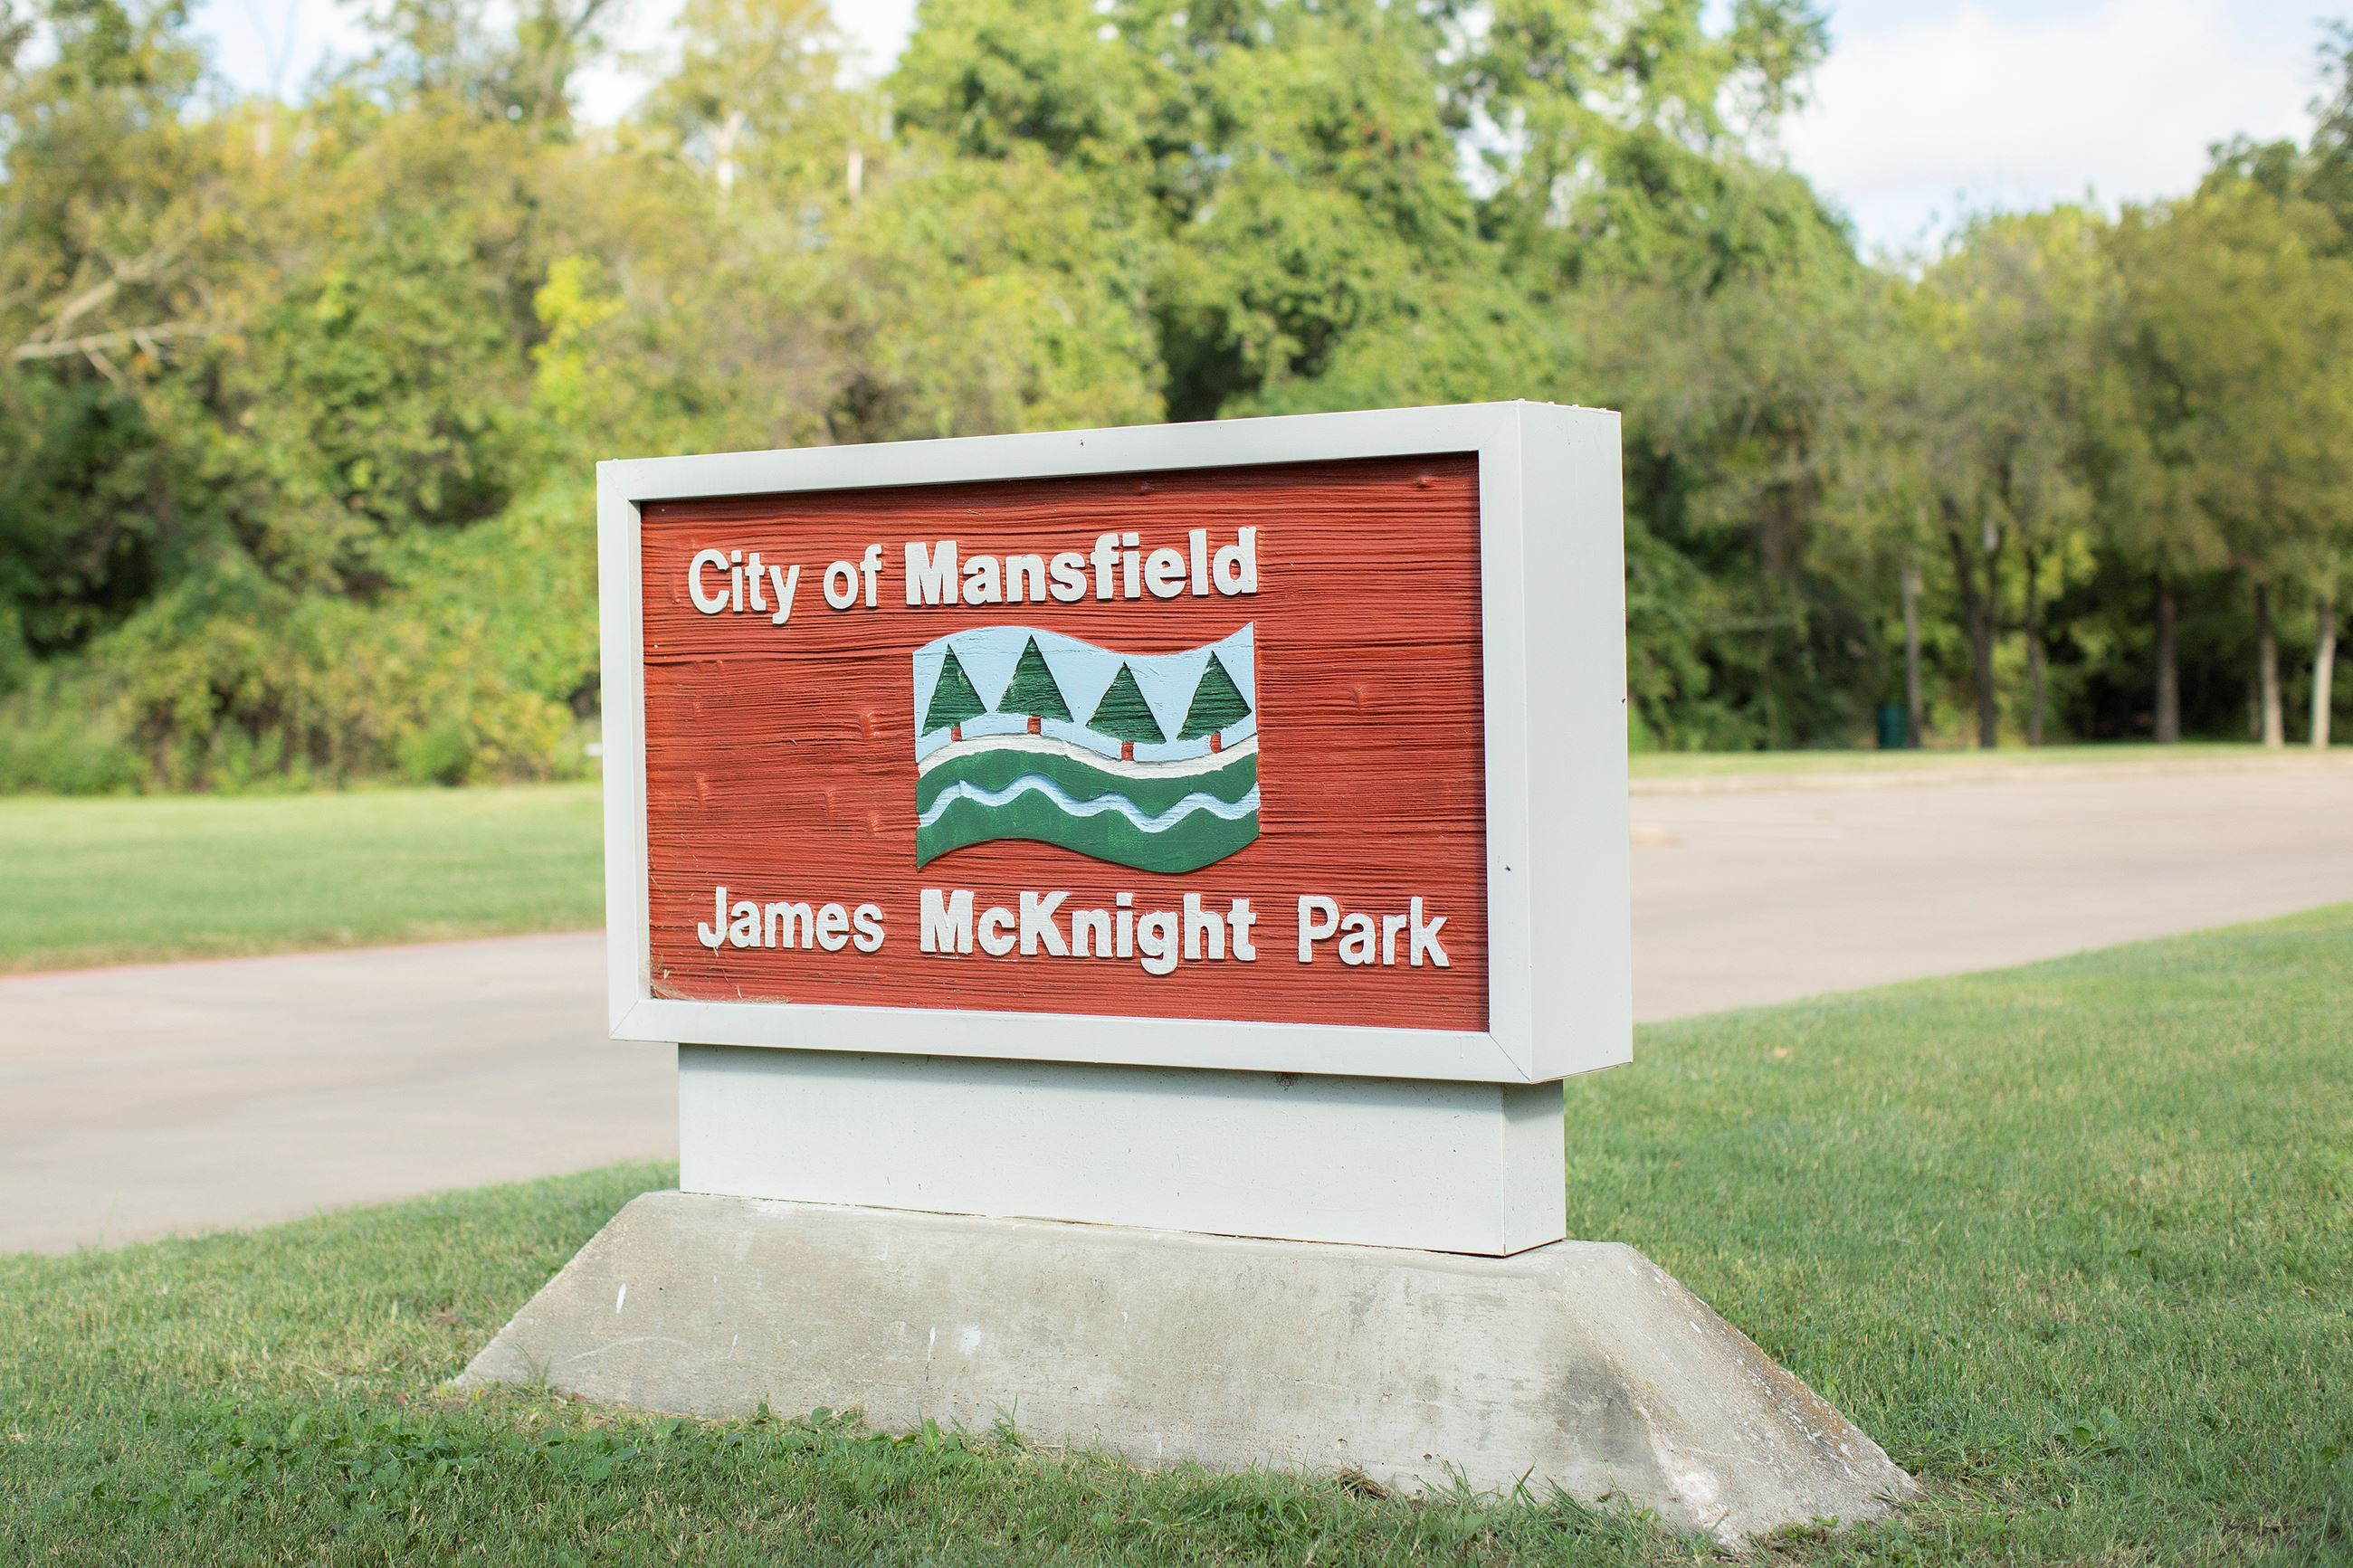 James McKnight Park West (7)